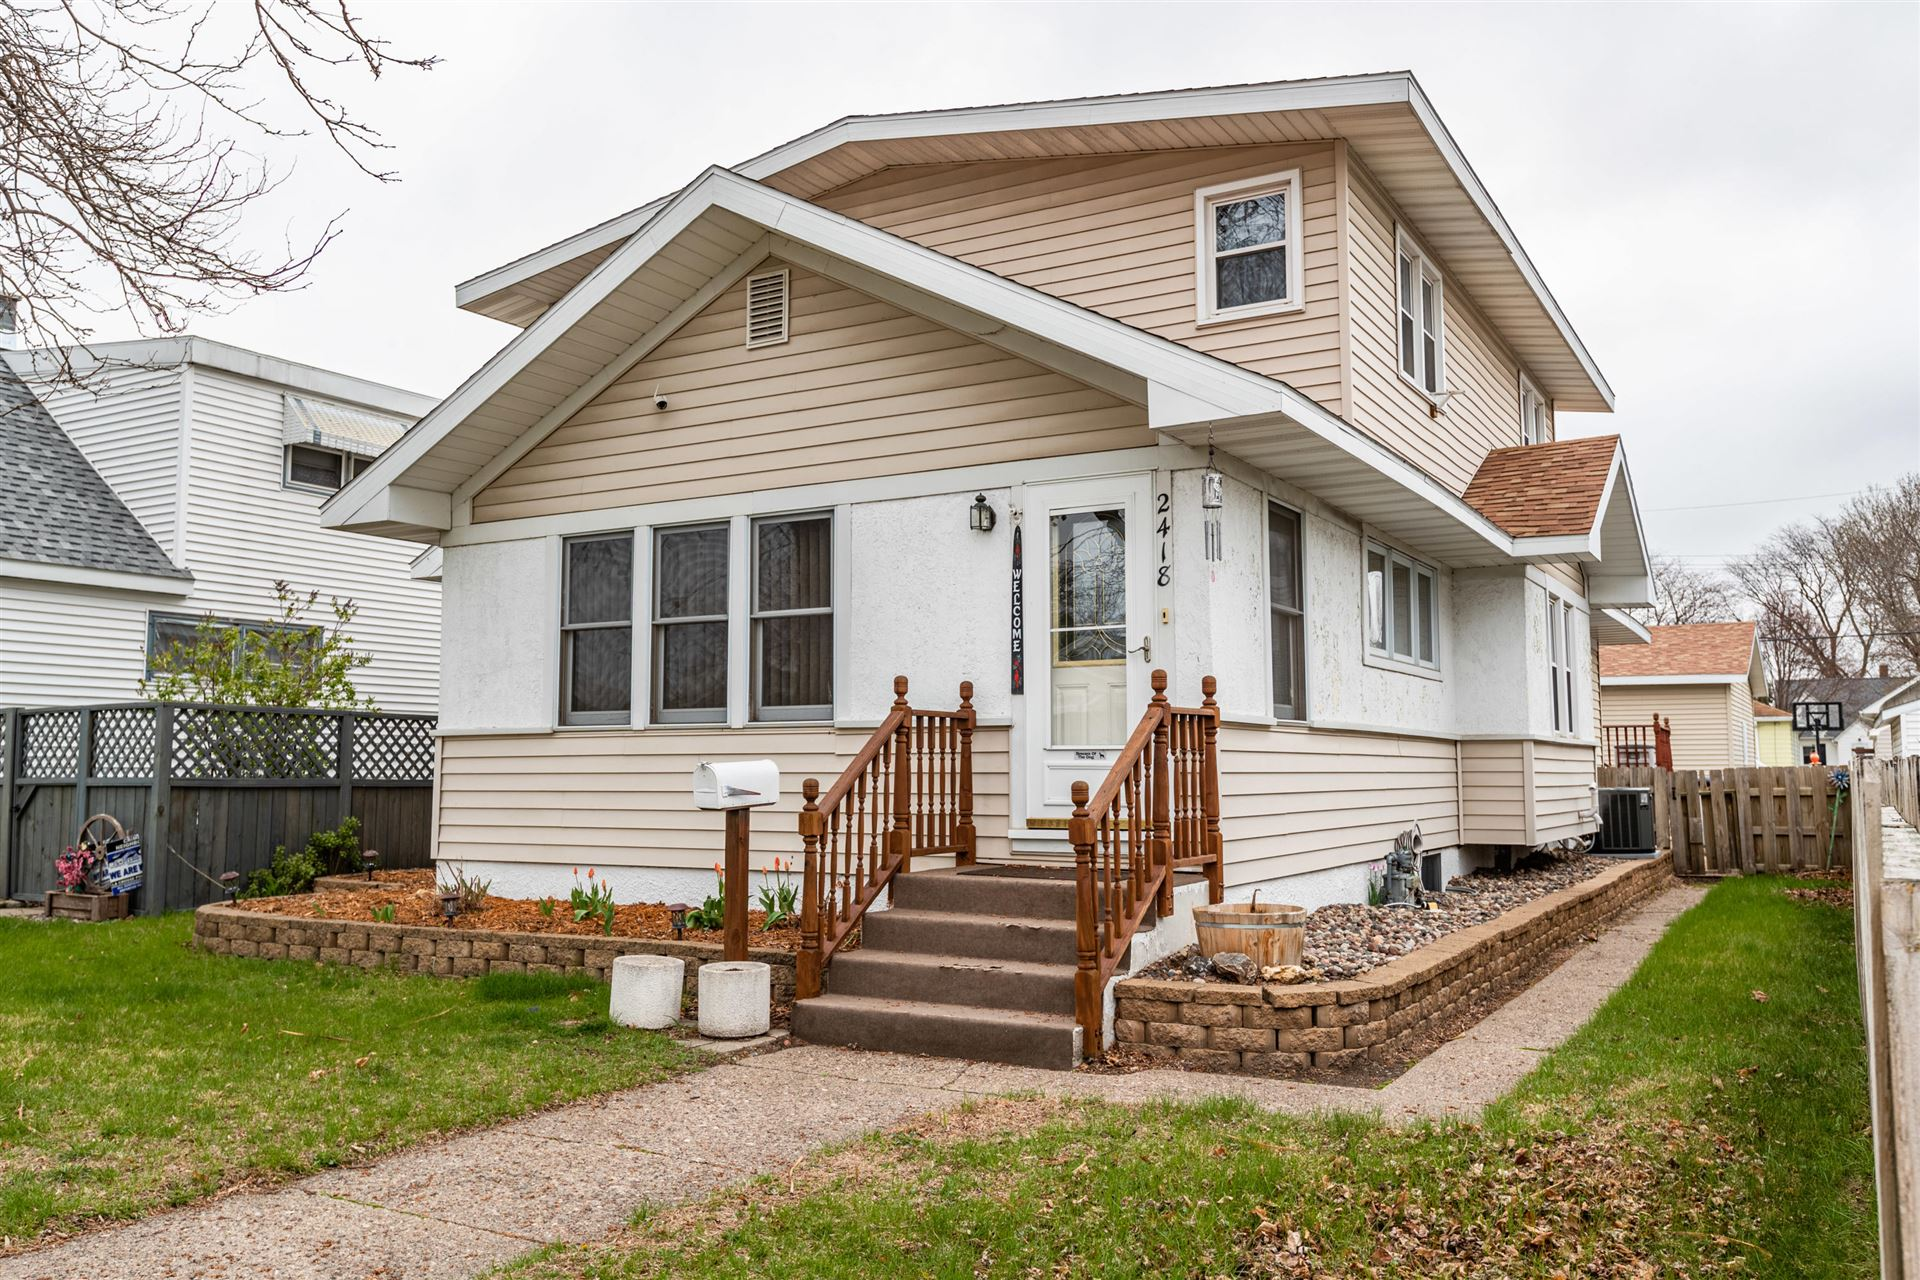 2418 Wood St, La Crosse, WI 54603 - MLS#: 1735582